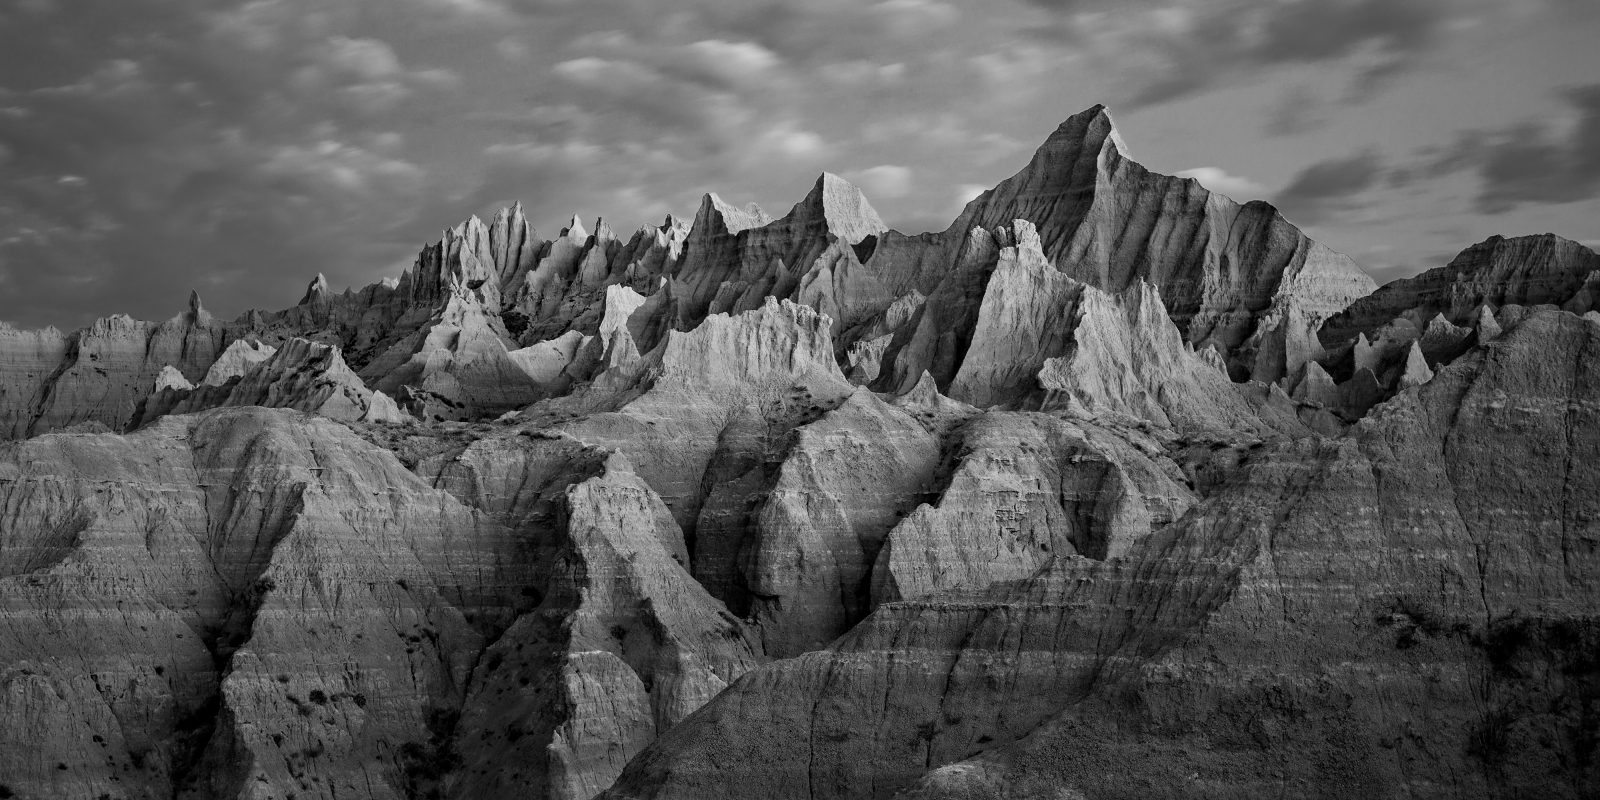 Badlands Early Light